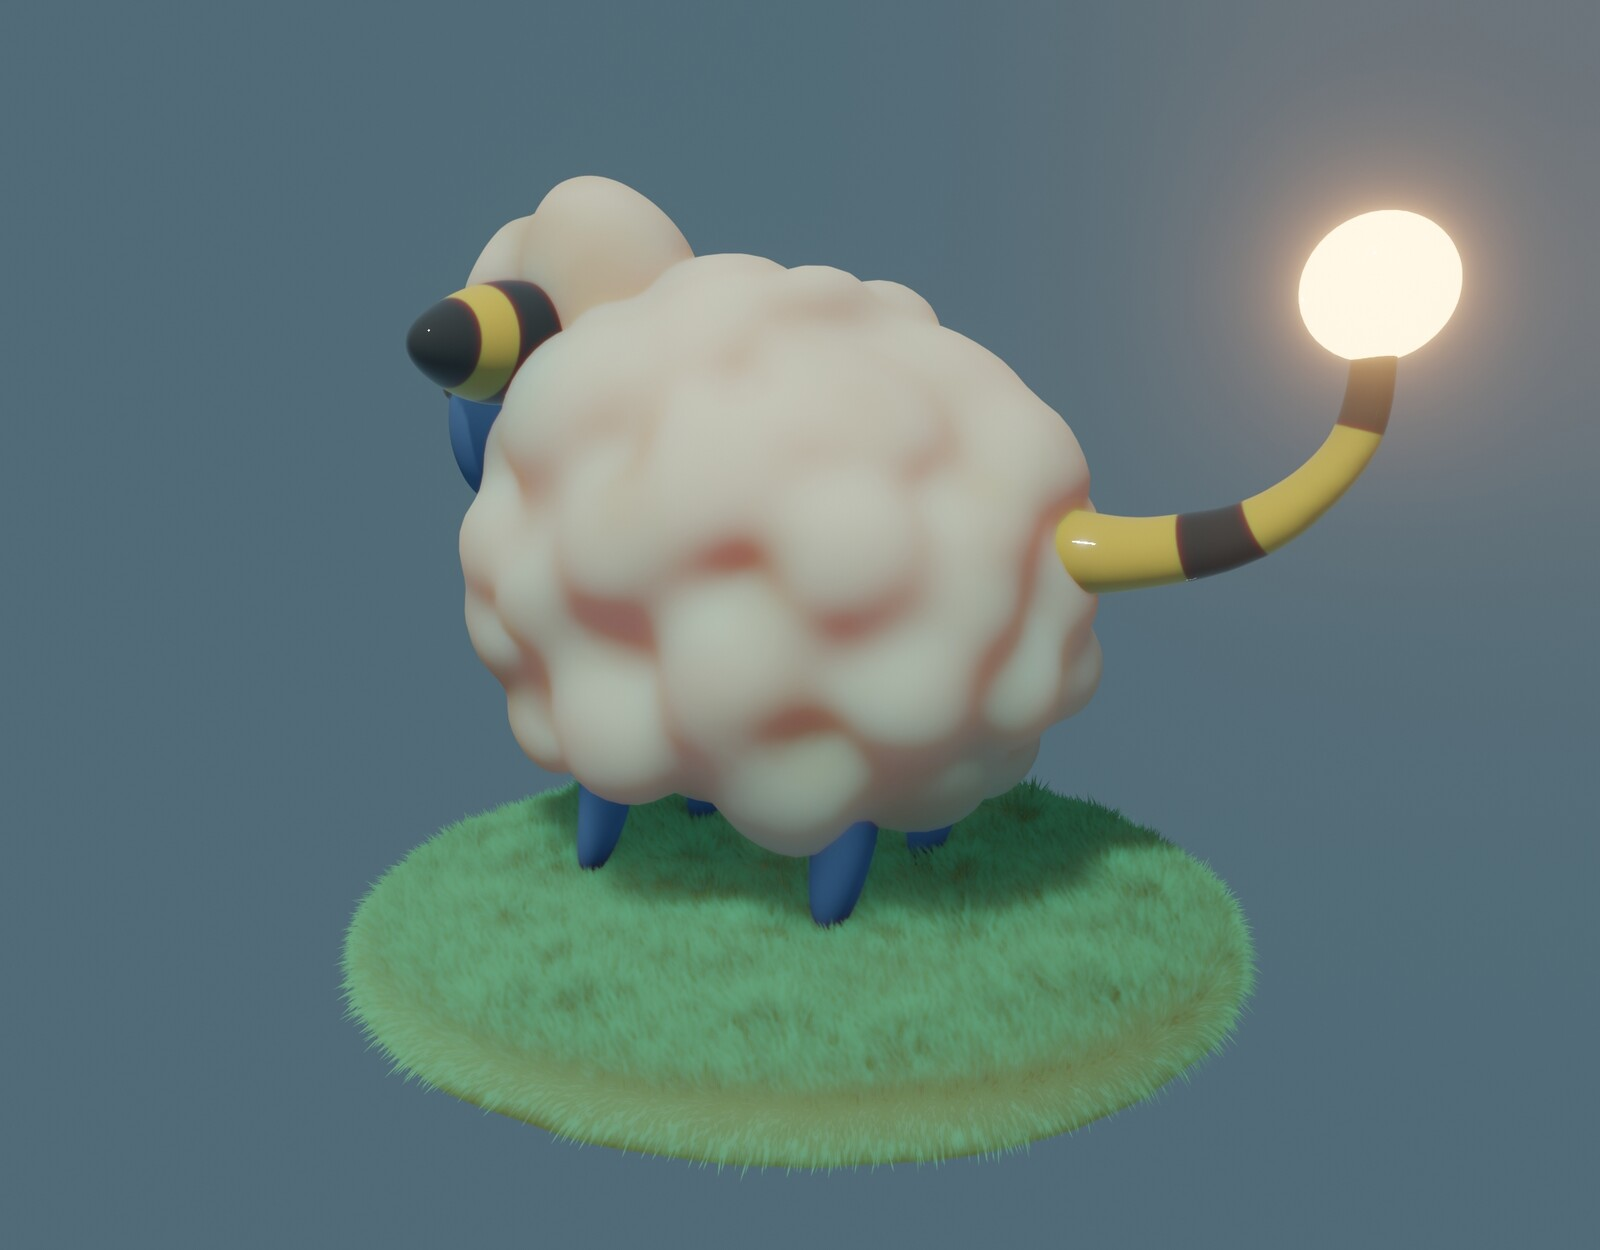 Blender 2.8 Eevee render.